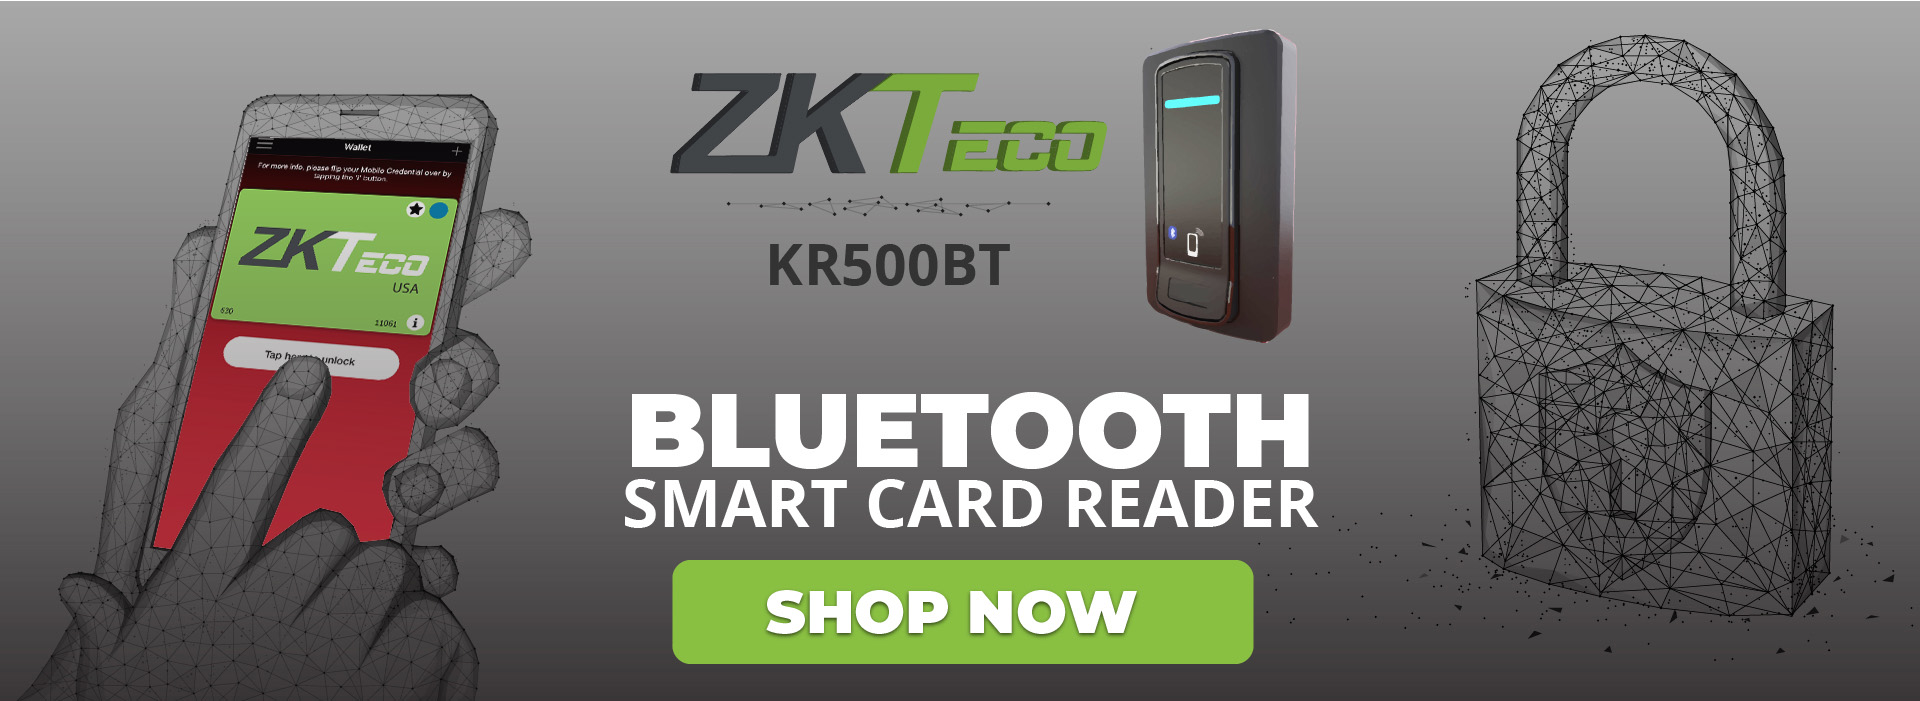 ZKTeco Bluetooth Reader KR500BT